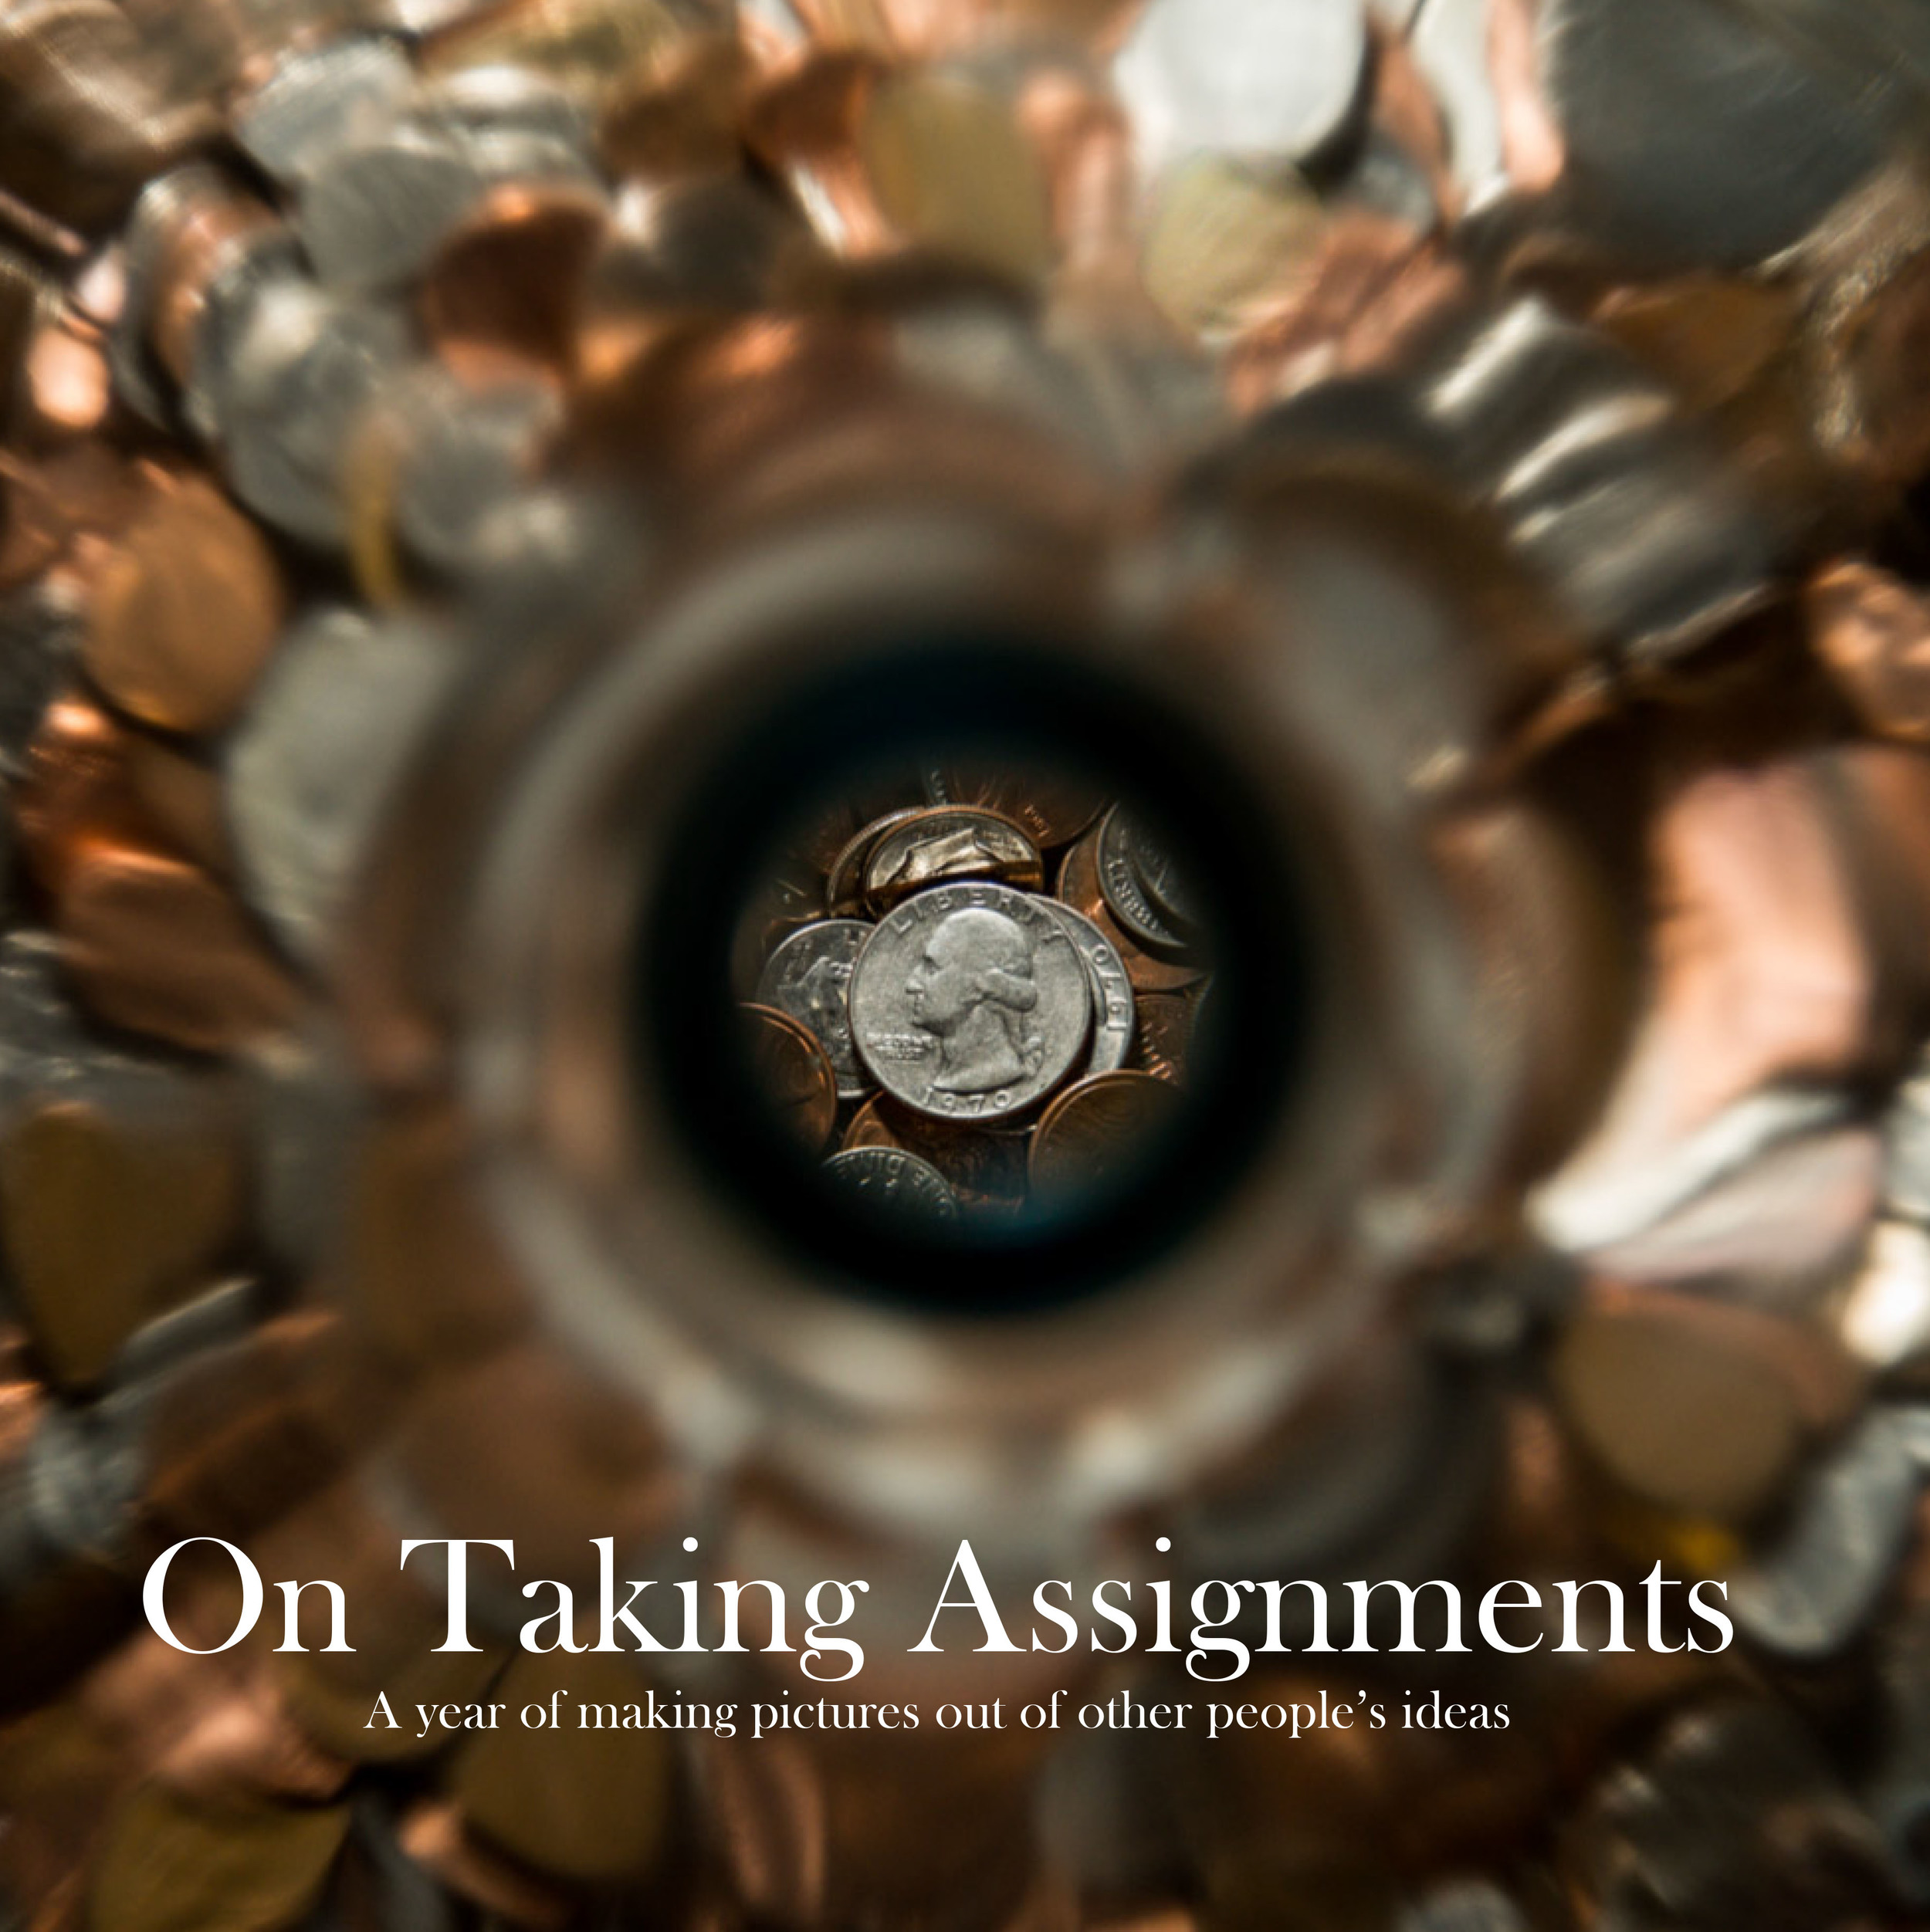 On Taking Assignments